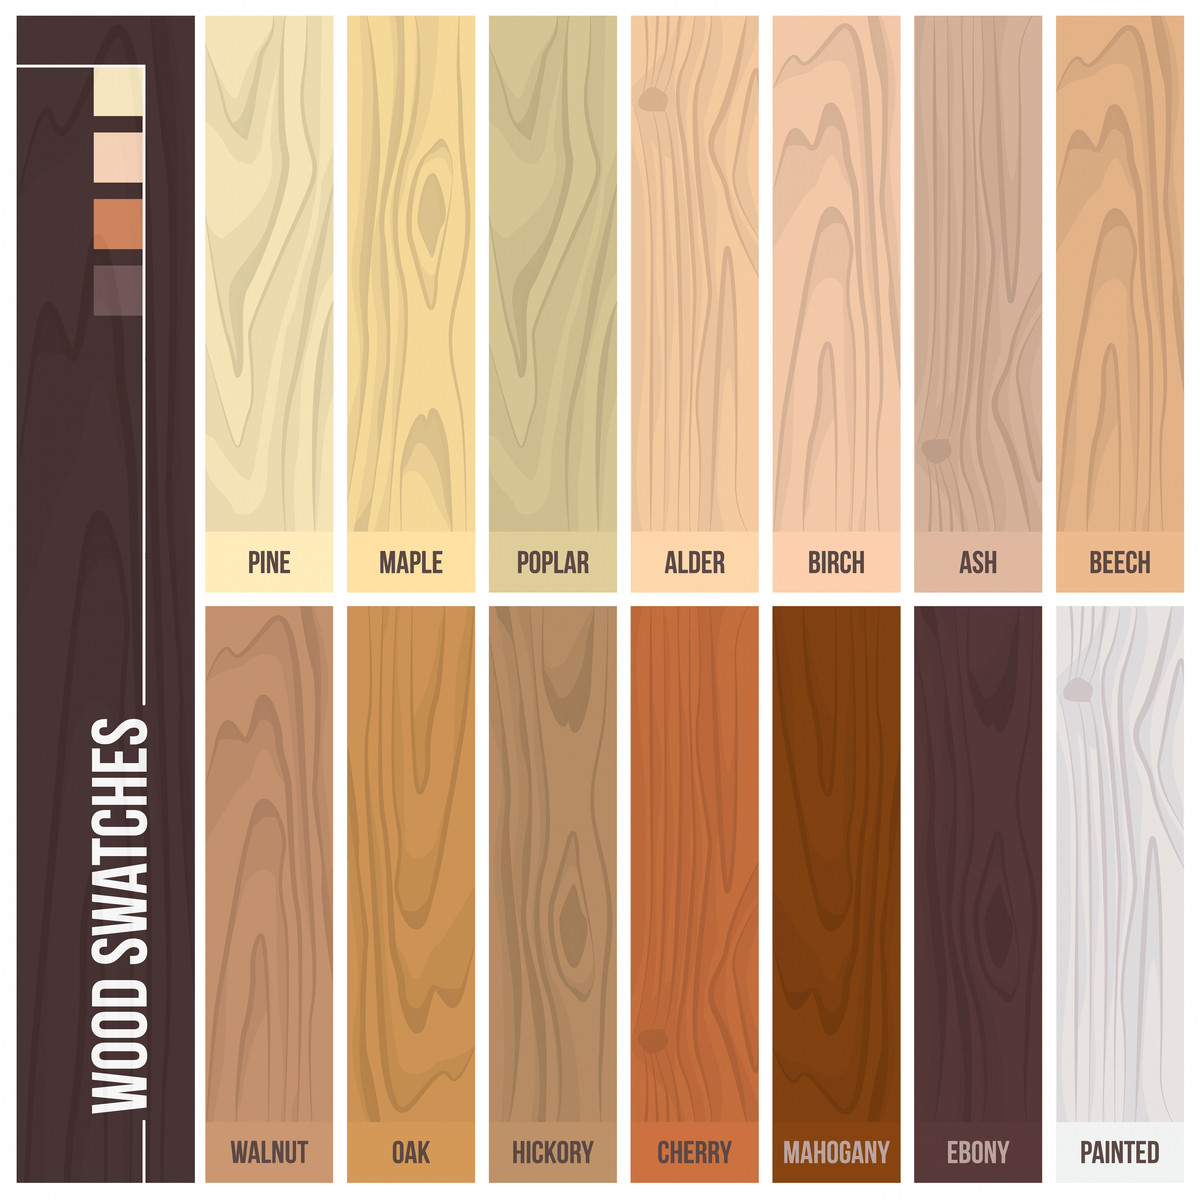 3 8 X 2 1 4 Hardwood Flooring Of 12 Types Of Hardwood Flooring Species Styles Edging Dimensions within Types Of Hardwood Flooring Illustrated Guide